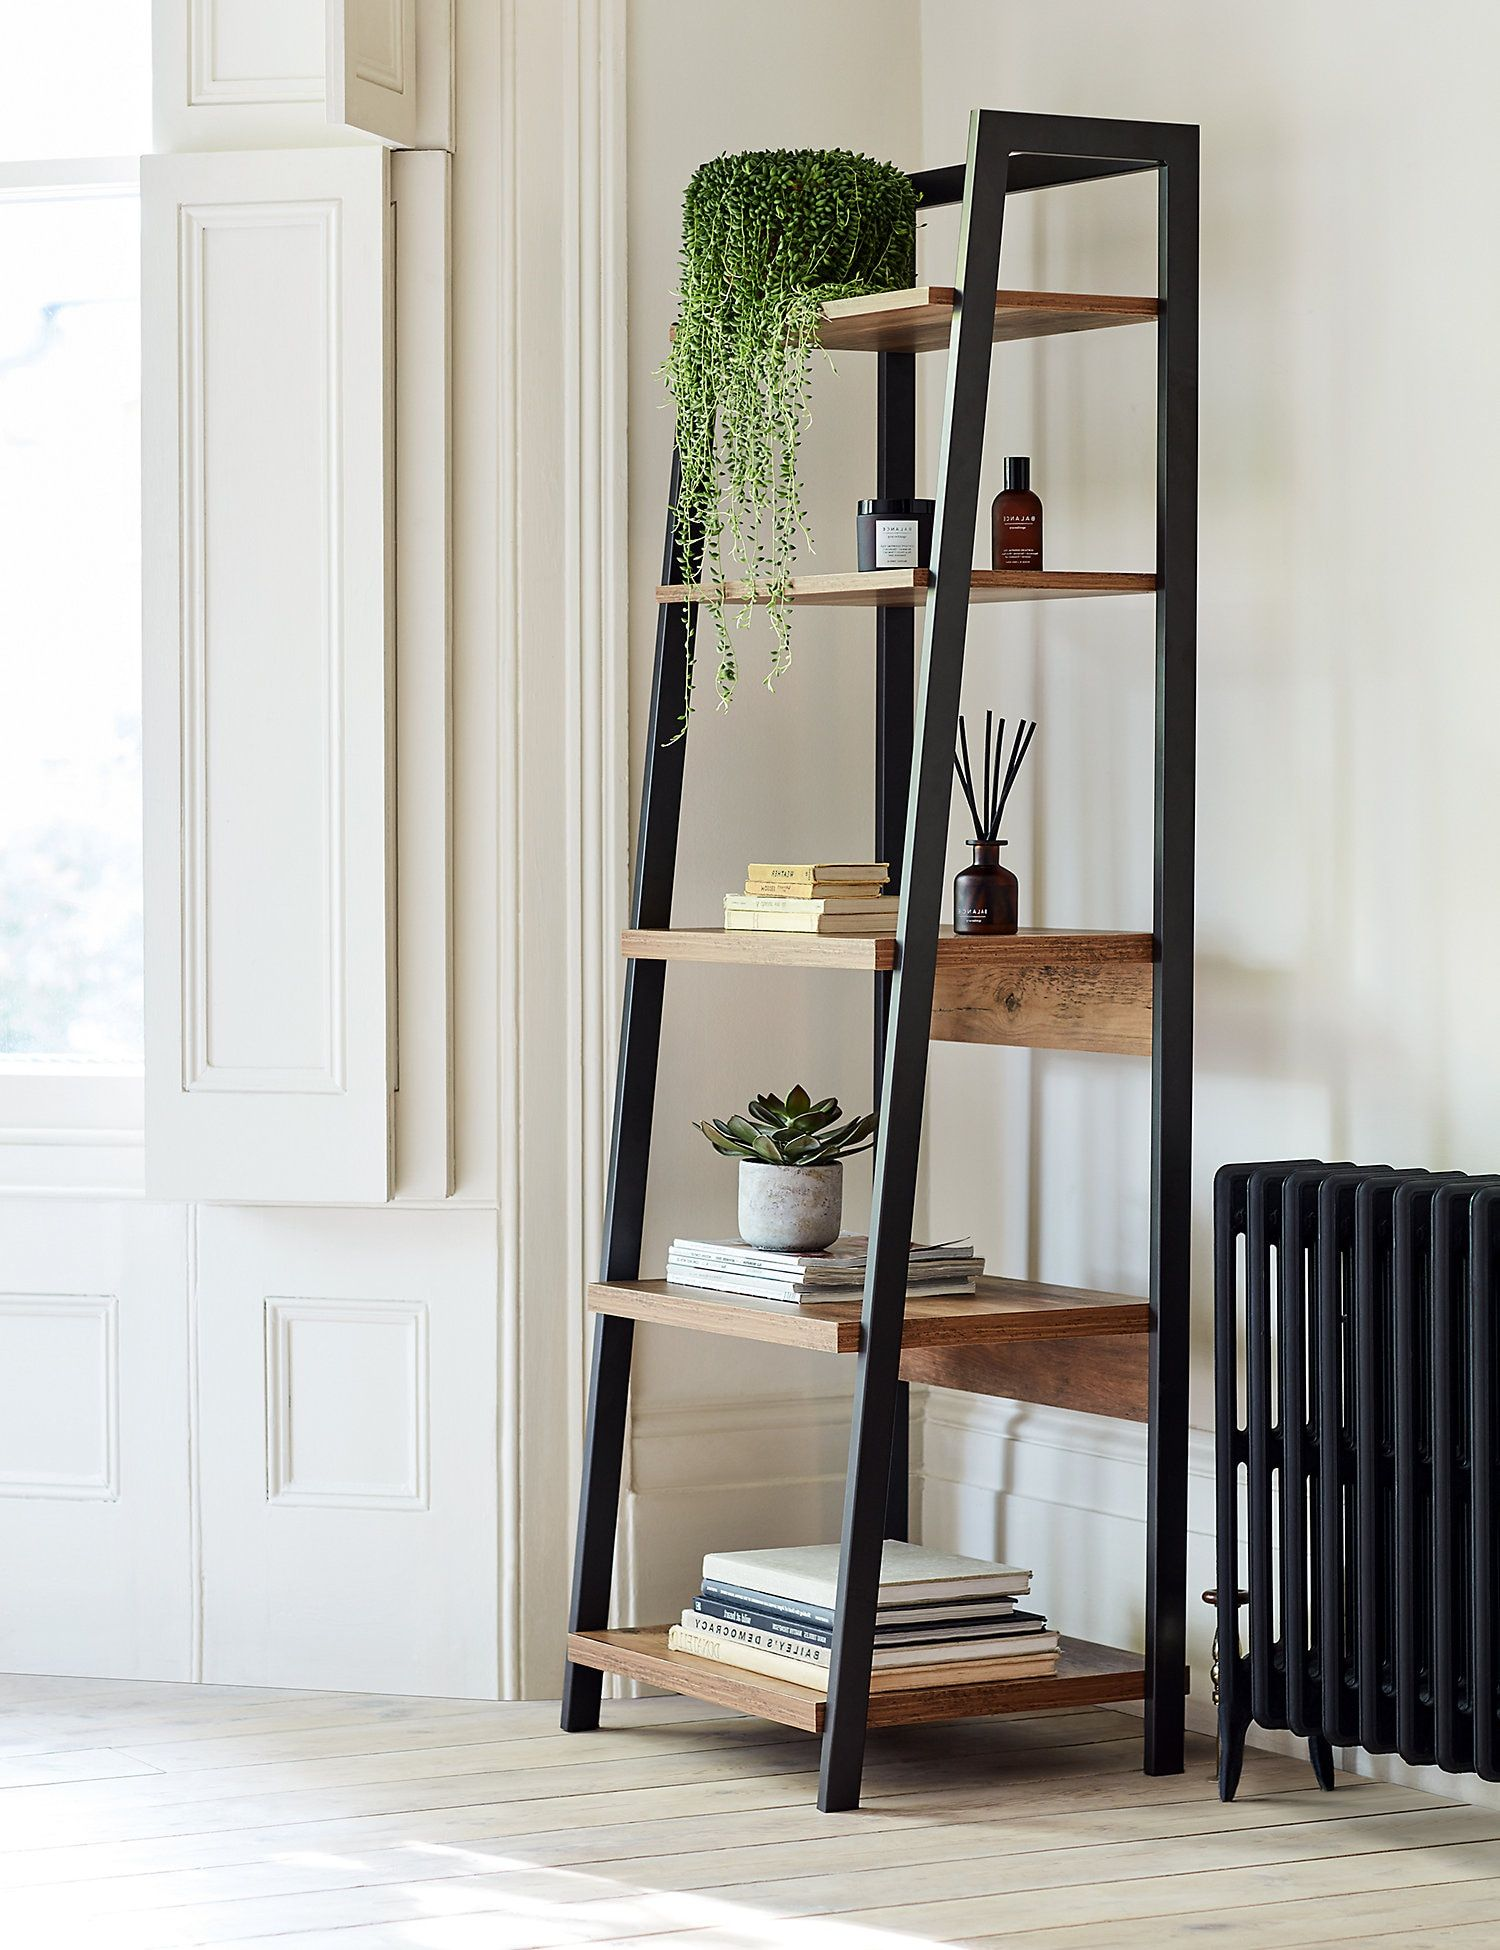 Baltimore Storage Ladder in 2020 Home decor, Easy home